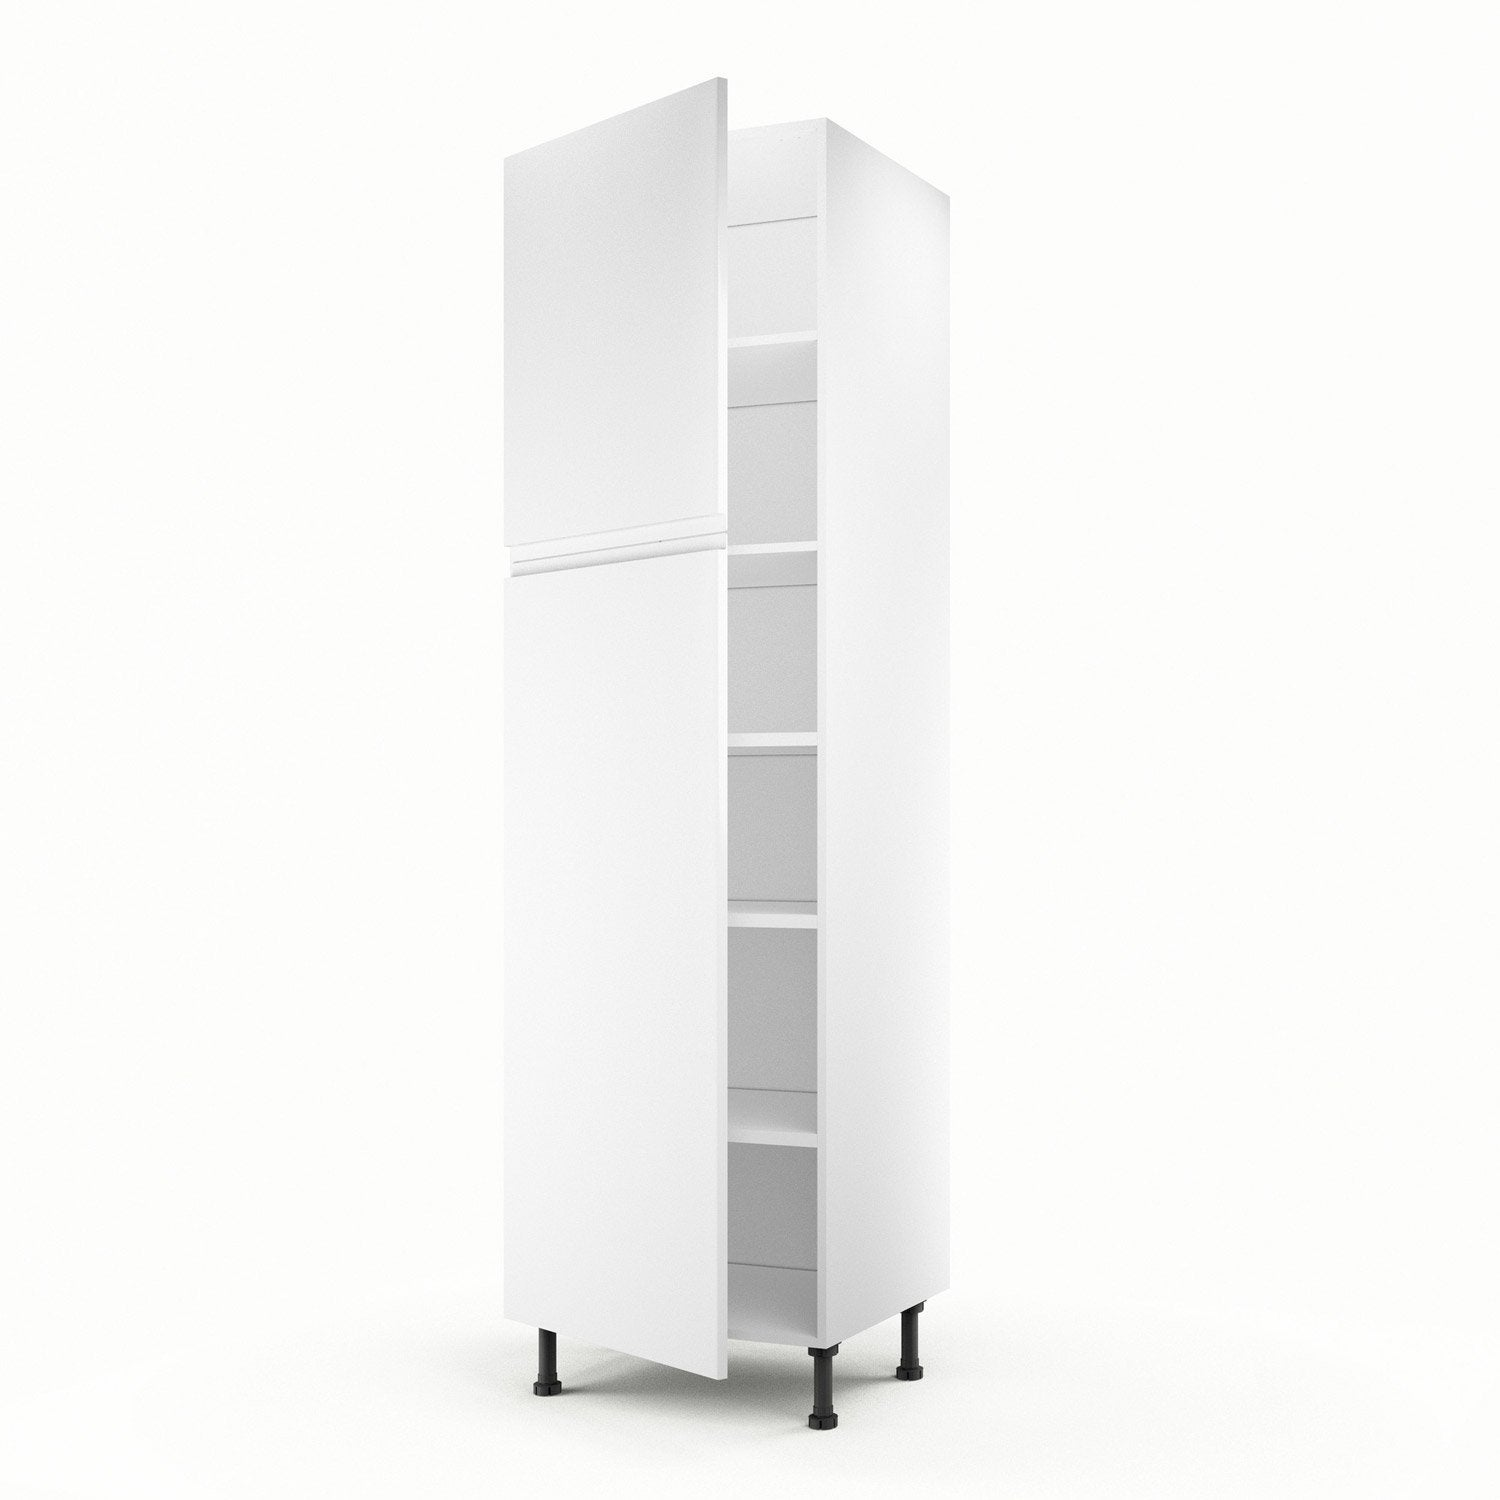 Meuble de cuisine colonne blanc 2 portes graphic x l for Portes elements cuisine leroy merlin